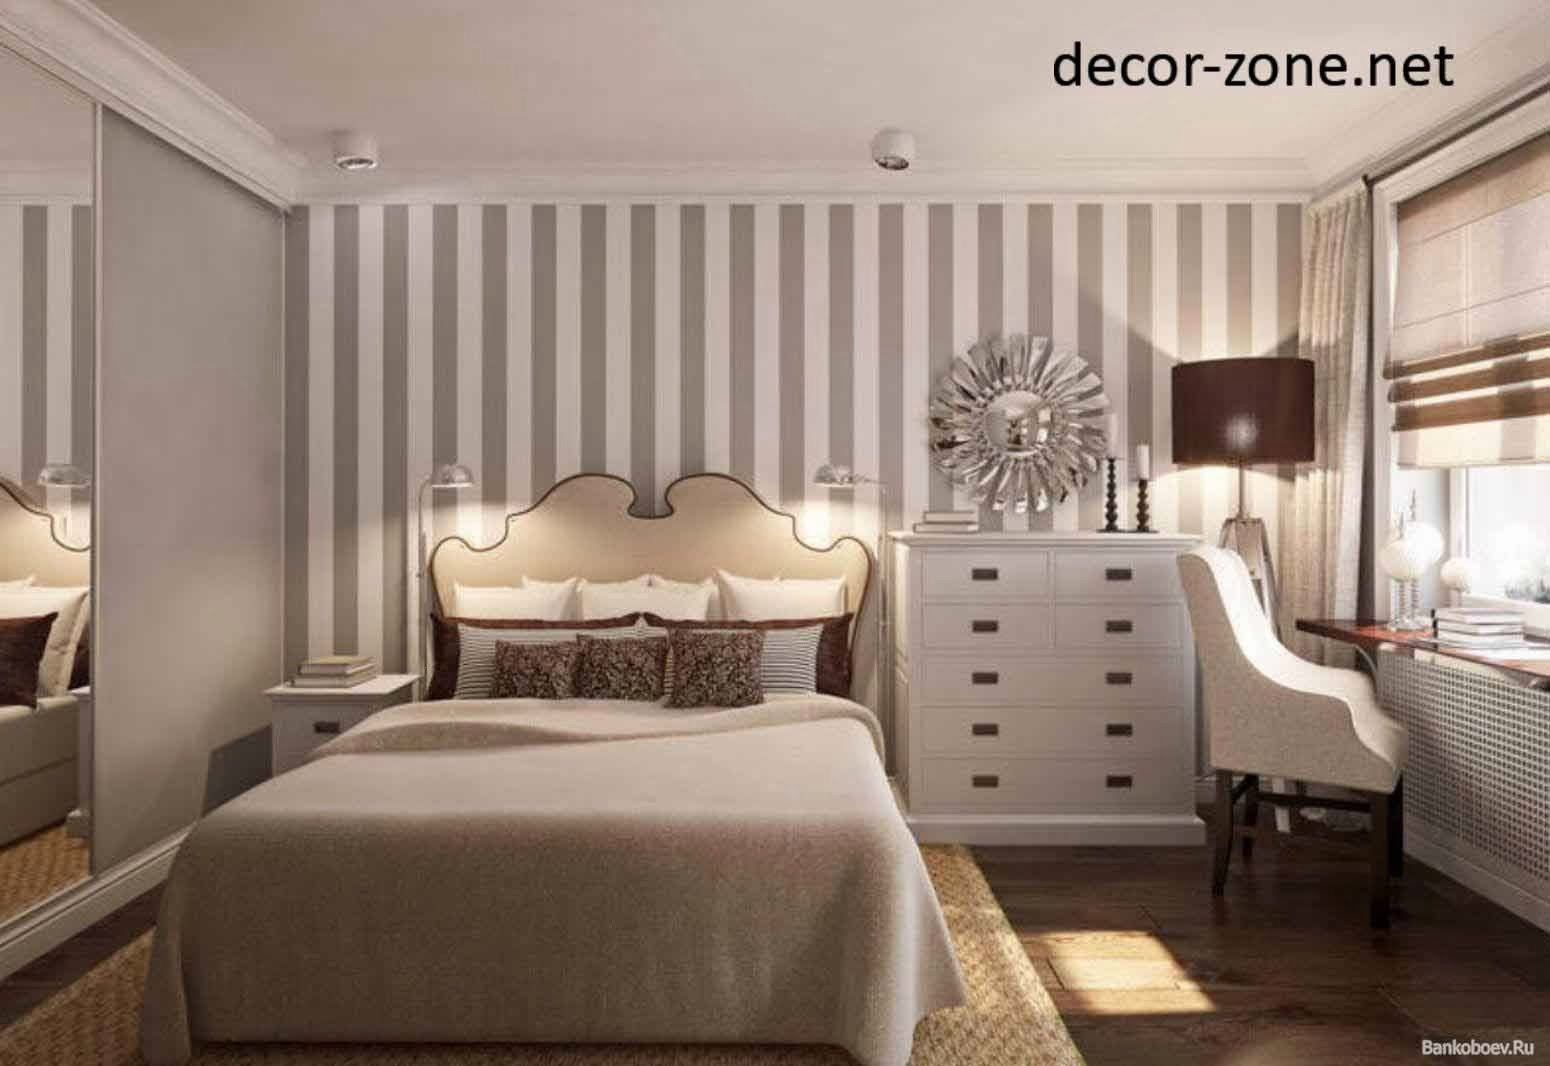 Wall Decor for Master Bedroom Inspirational Wall Decor Ideas for the Master Bedroom